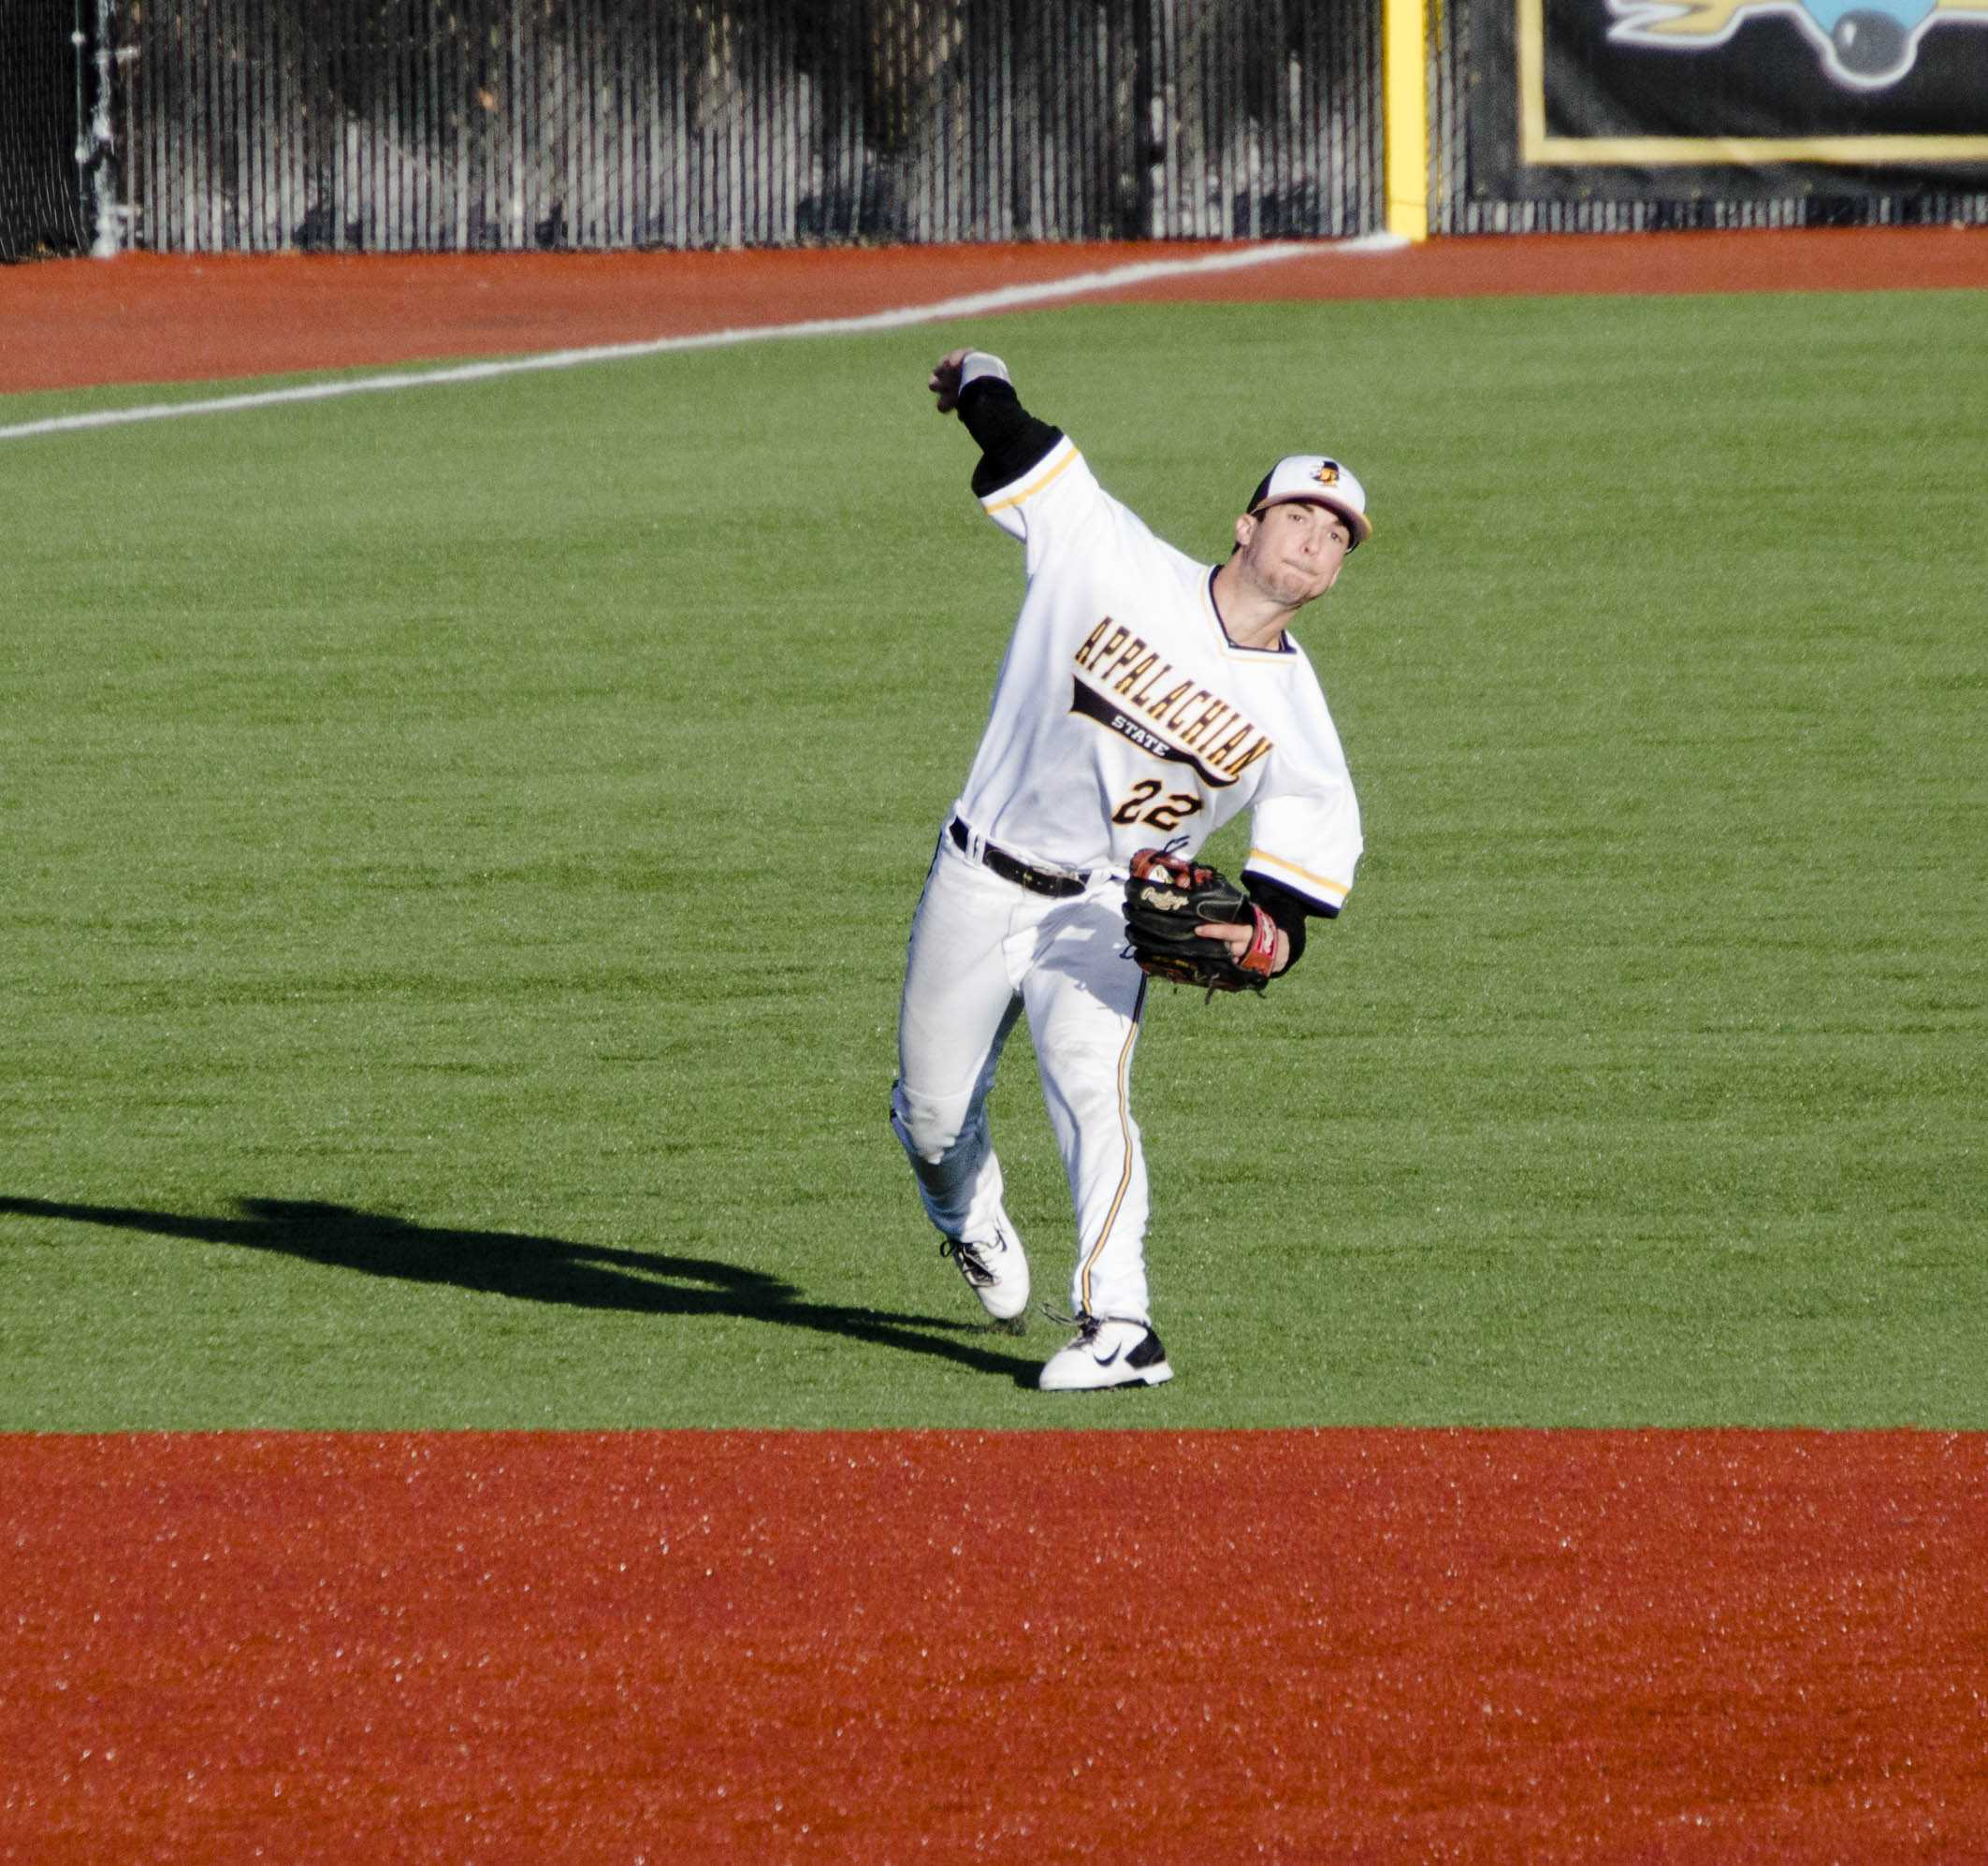 Senior middle infielder Michael Pierson makes a play in the hole against Wake Forest March 25. Pierson went 1-3 with an RBI against High Point last night in the 8-3 App State win.